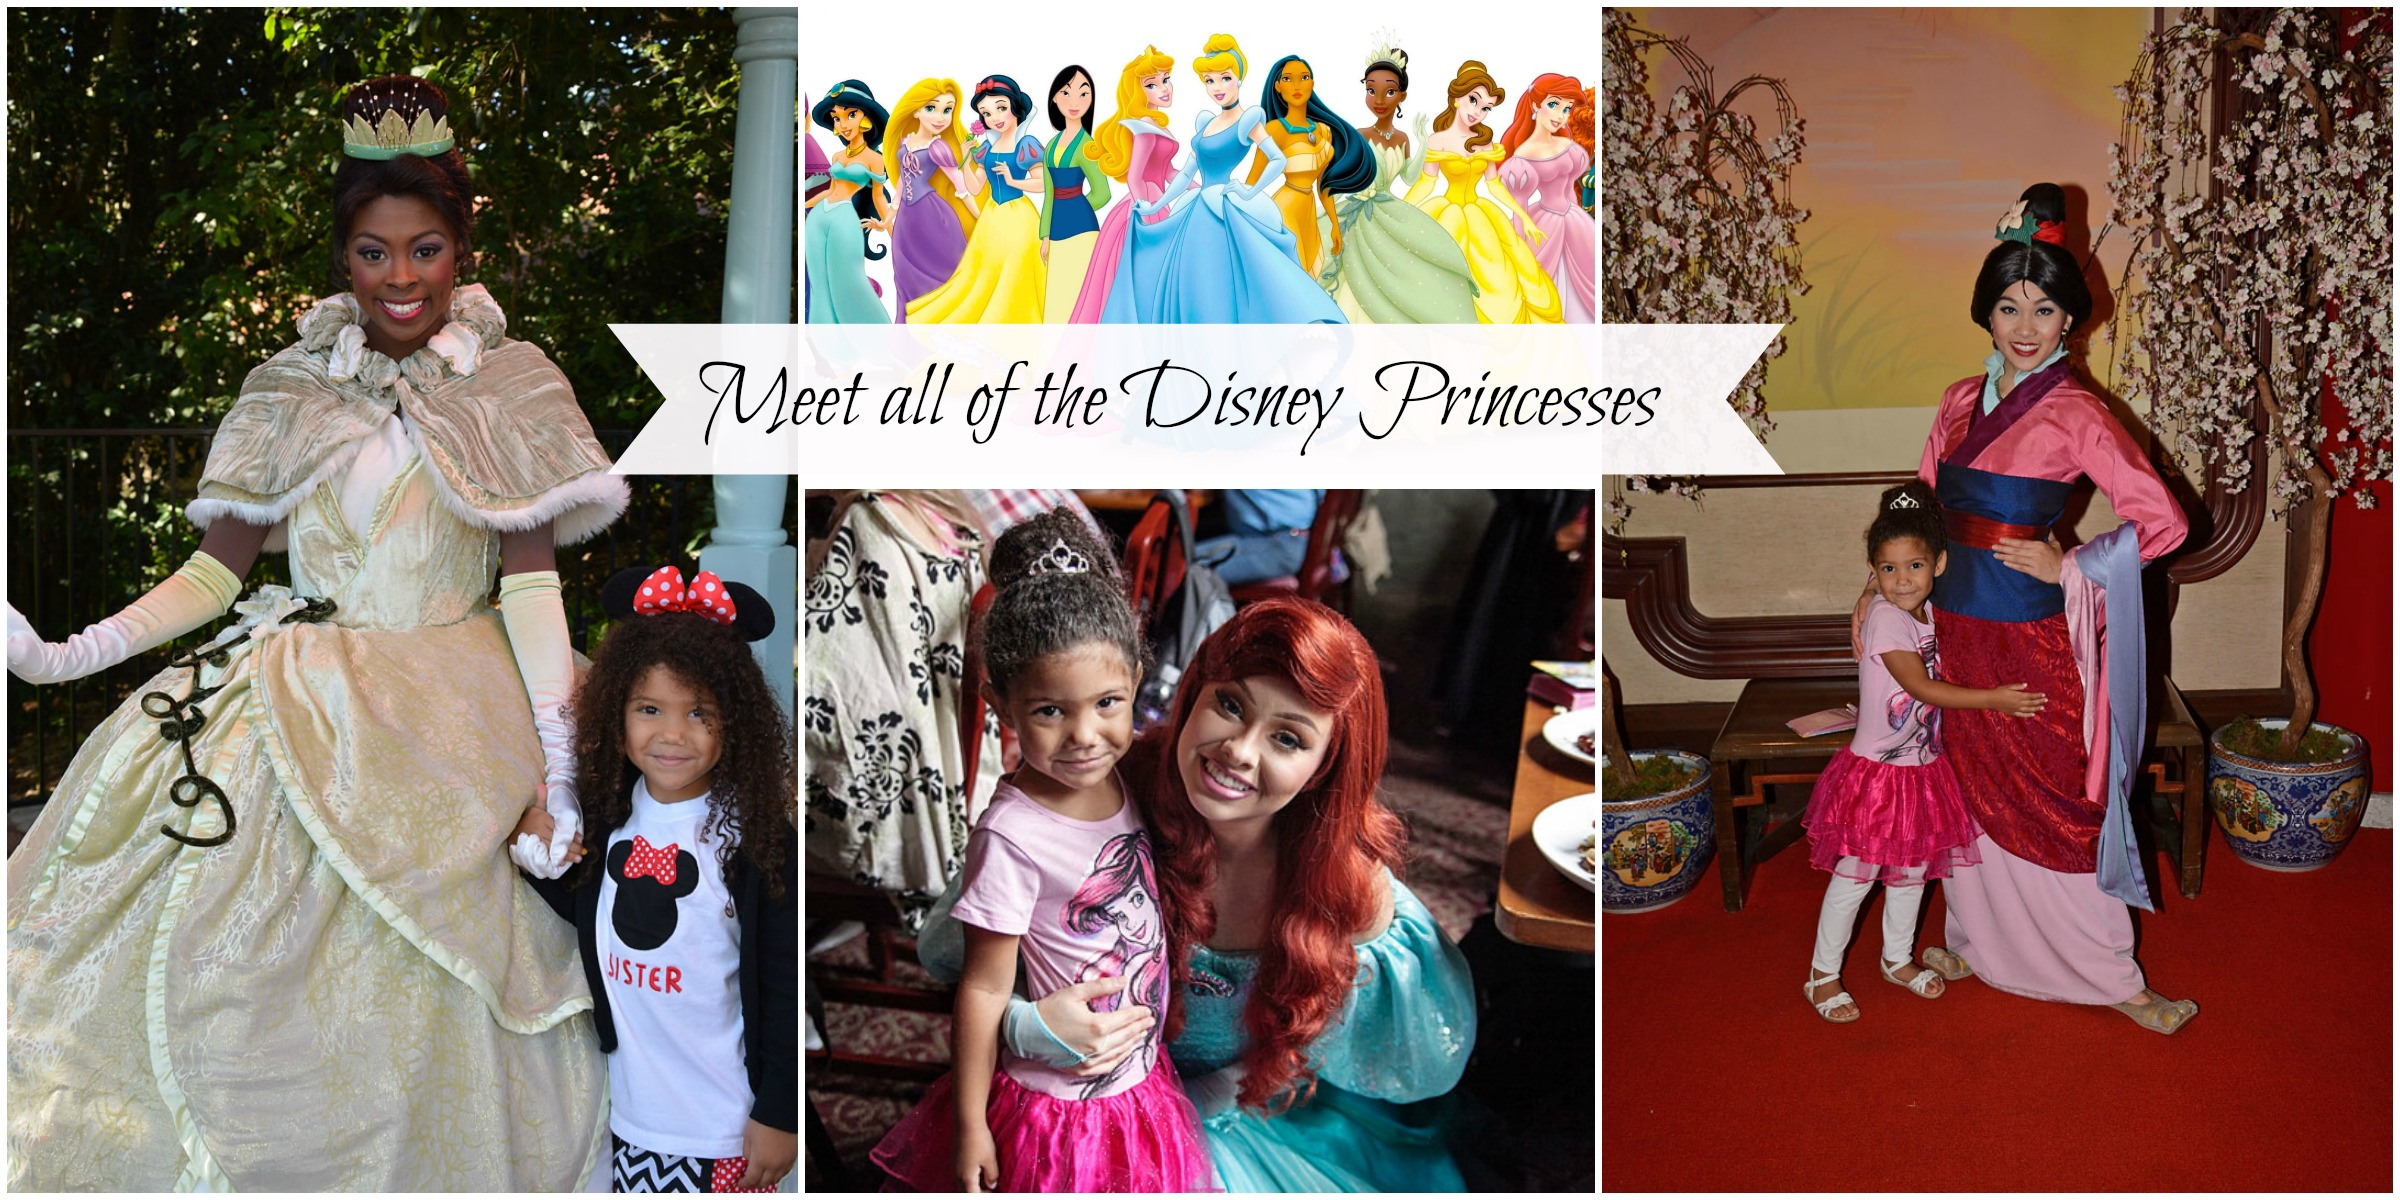 Tips for meeting all of the disney princesses at disney world tips for meeting all of the disney princesses at disney world where to find them kristyandbryce Images